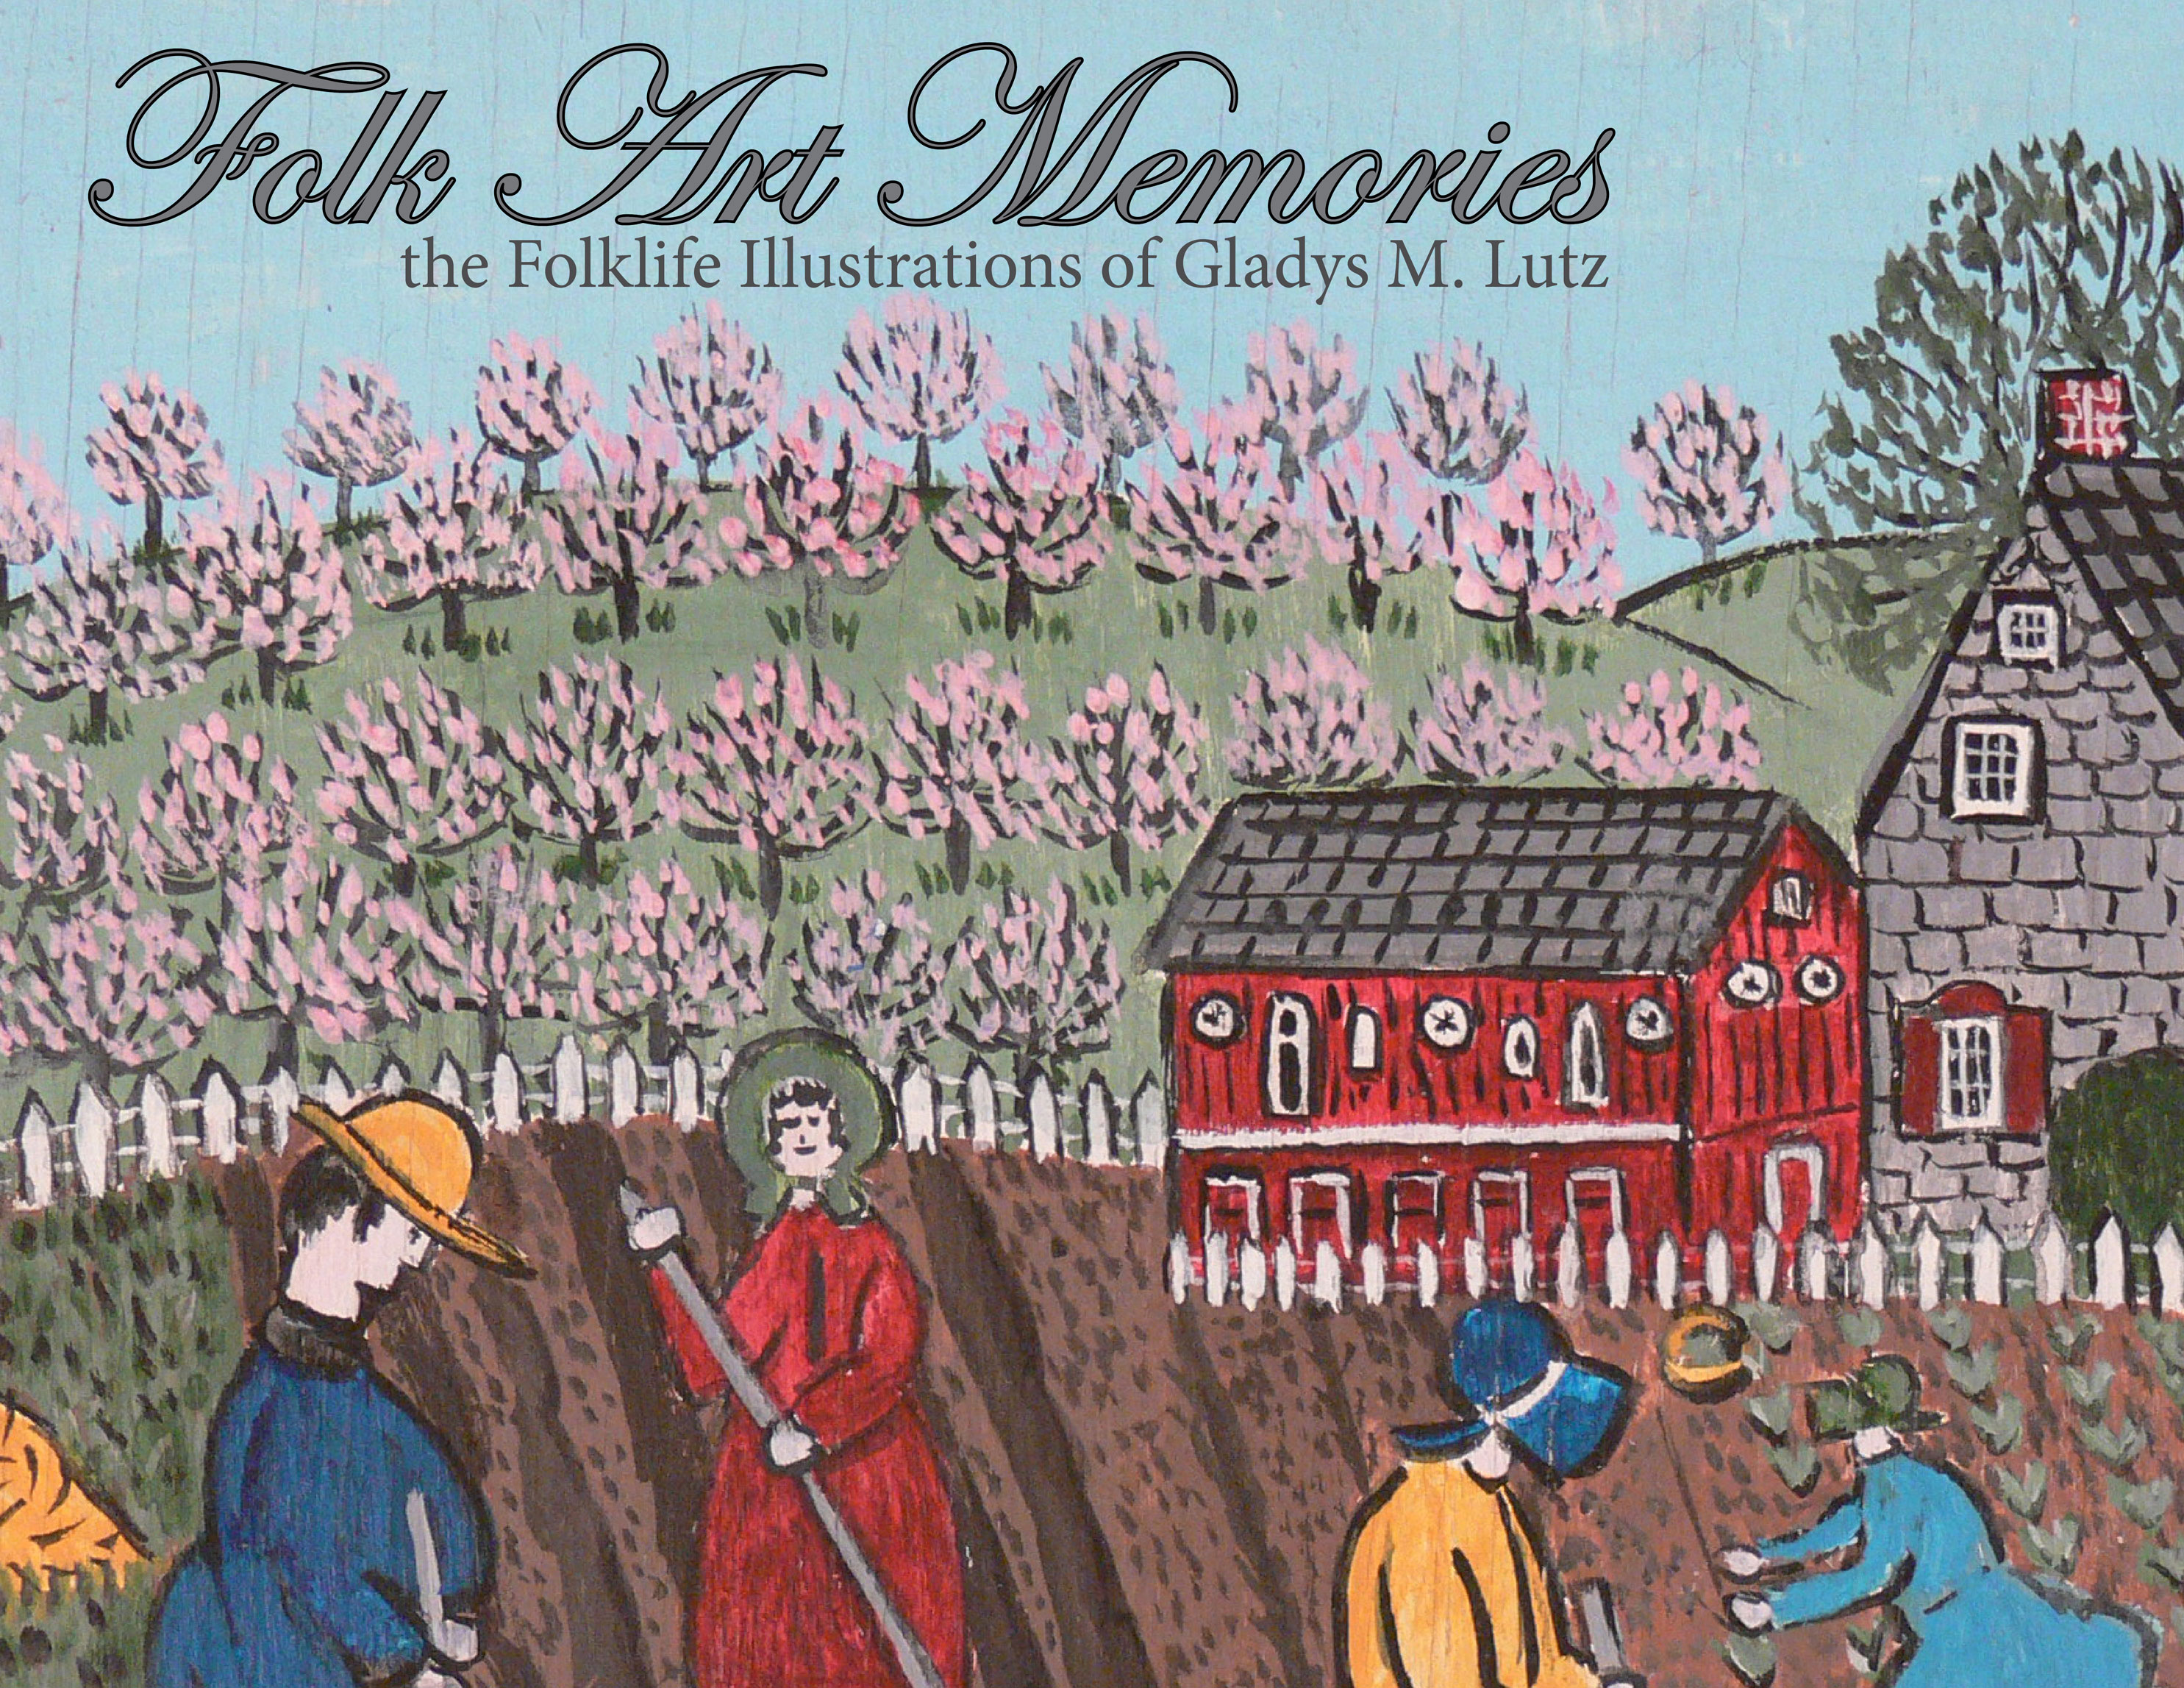 Front Cover: A primatively drawn farmscape with people planting in a field. The title of the book is in the top left-hand corner.